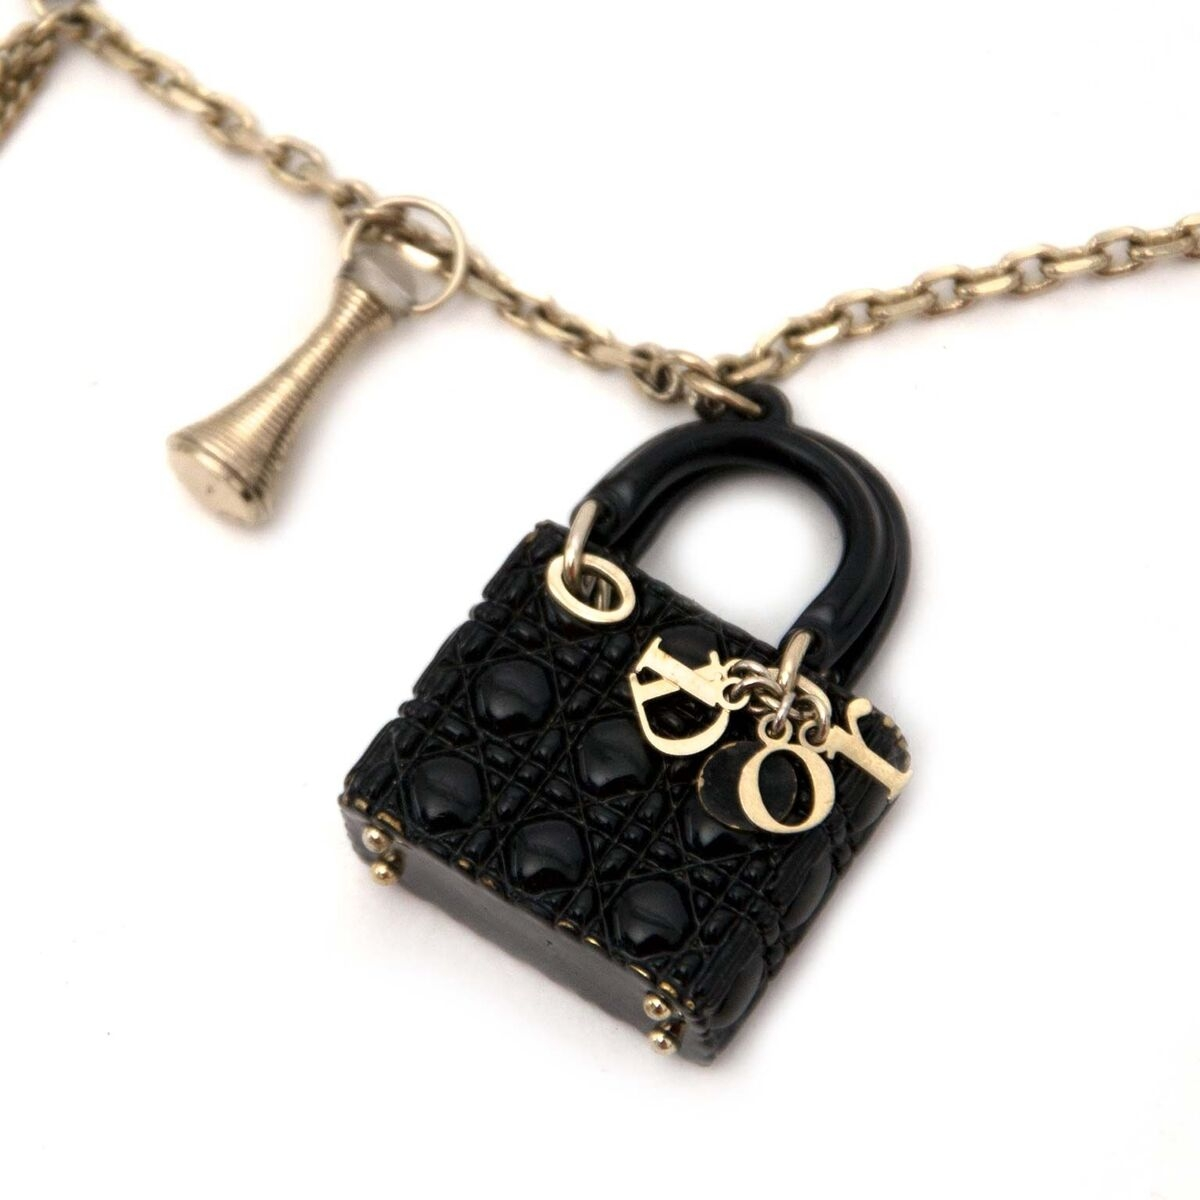 Buy authentic secondhand Dior charm necklace at the right price at LabelLOV vintage webshop. Safe and secure online shopping.